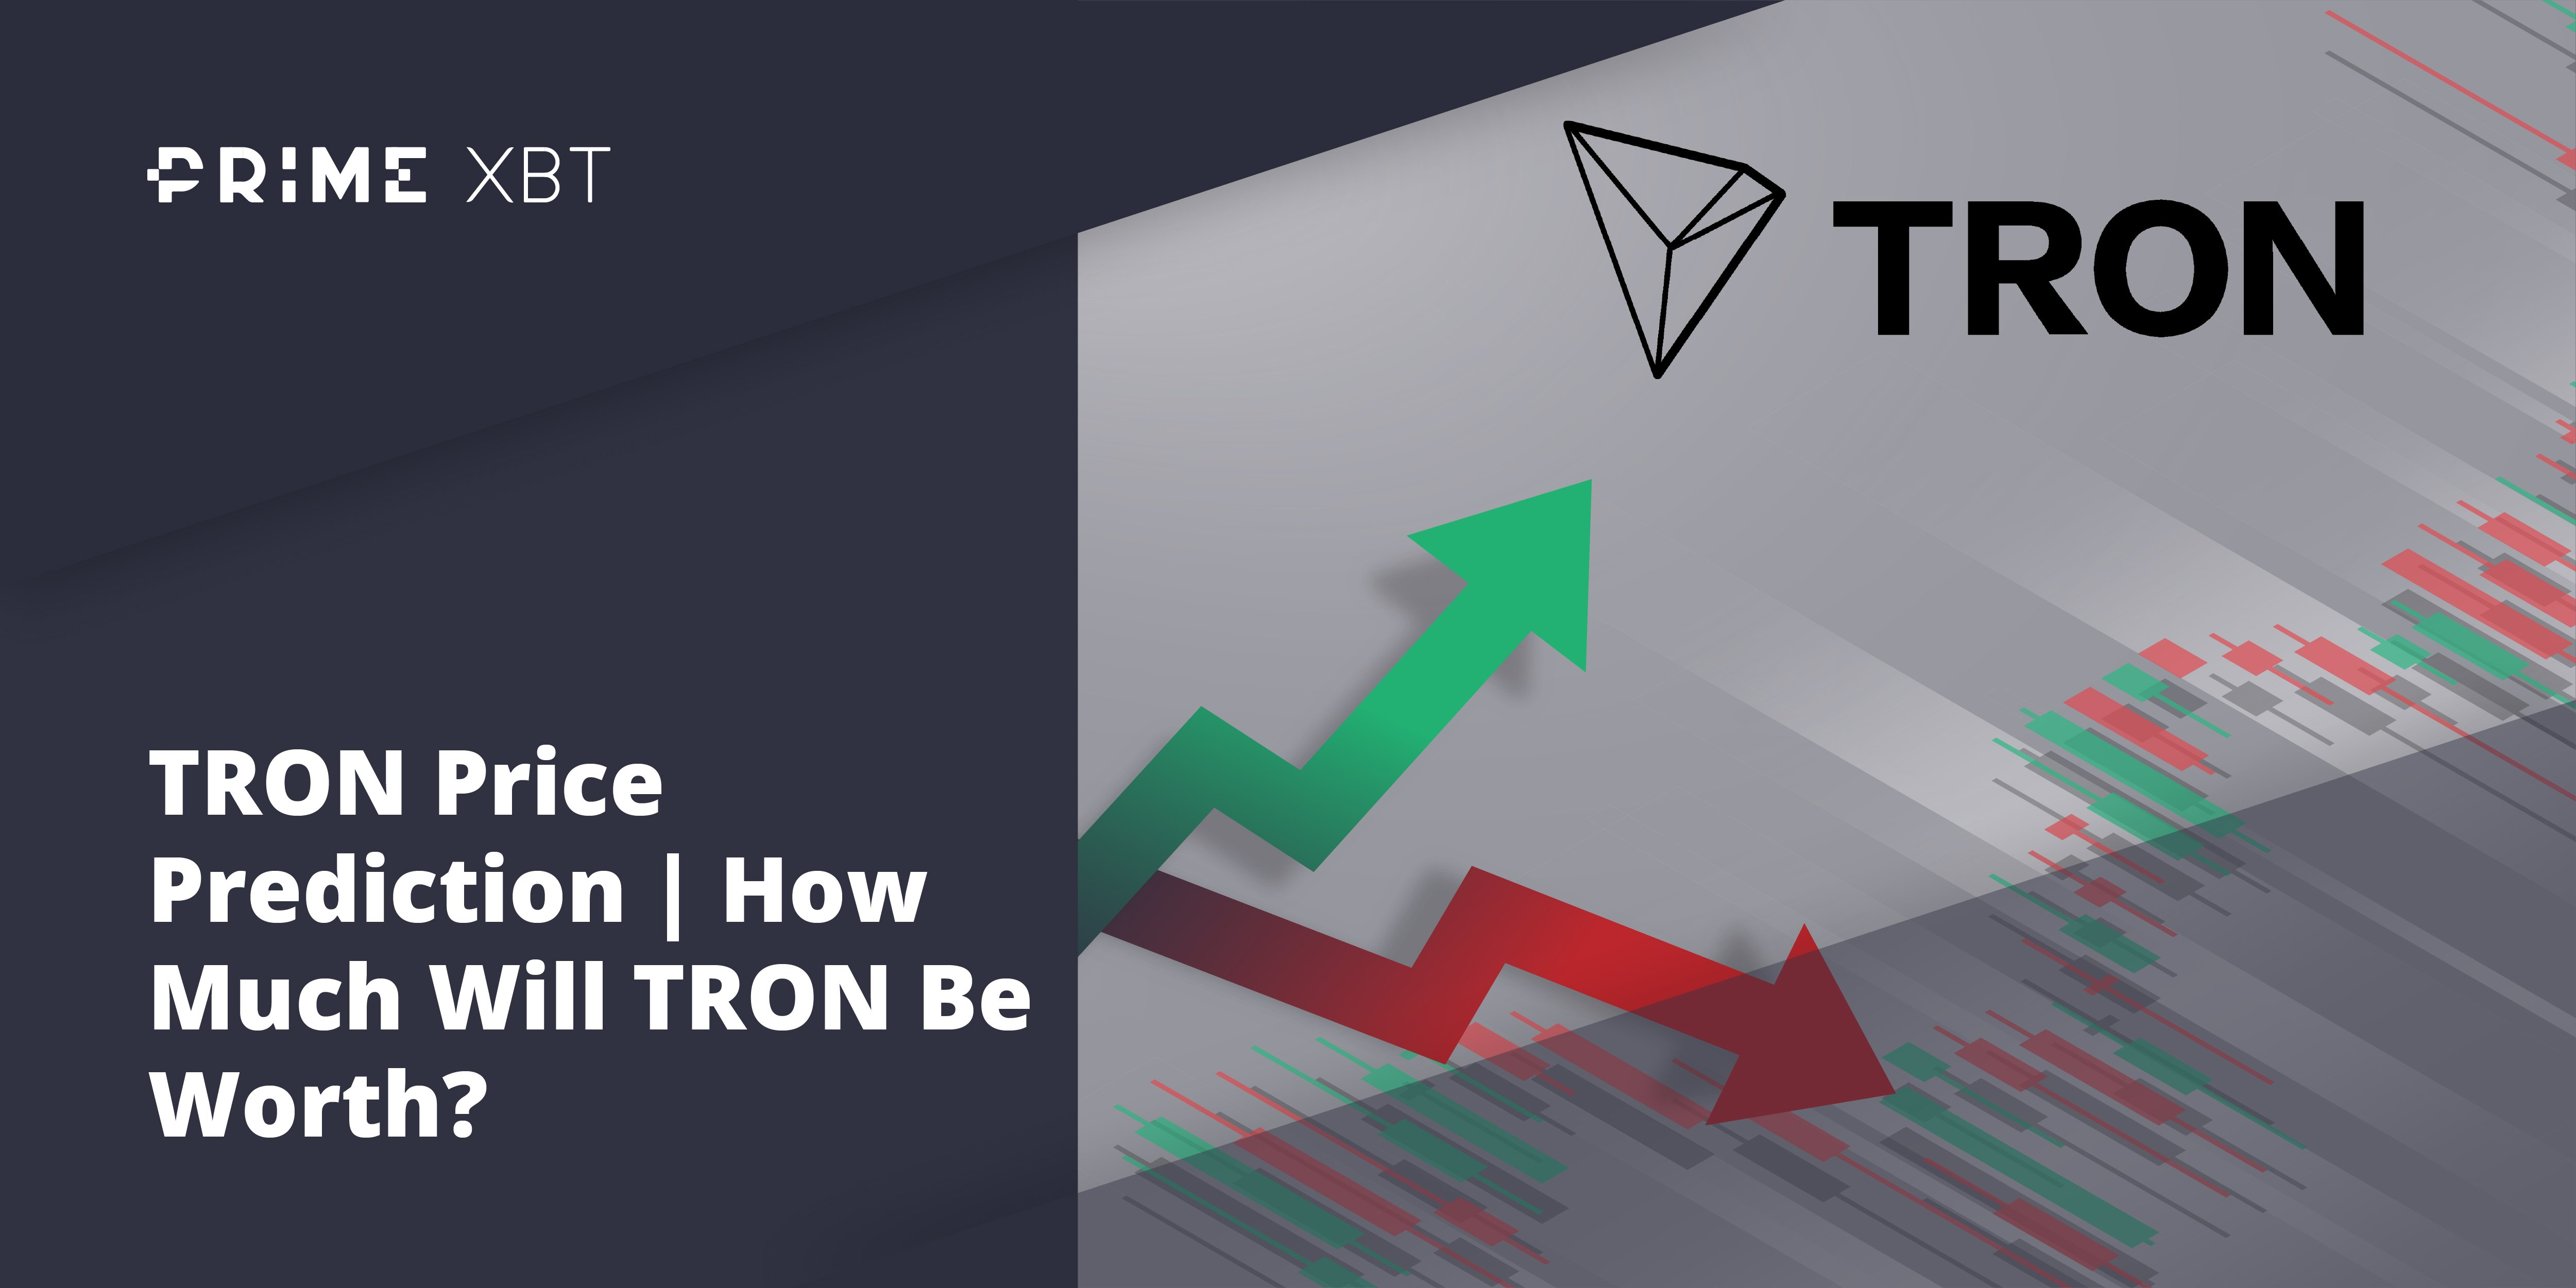 TRON Price Prediction: Will the Price Grow with the Project? - tron2